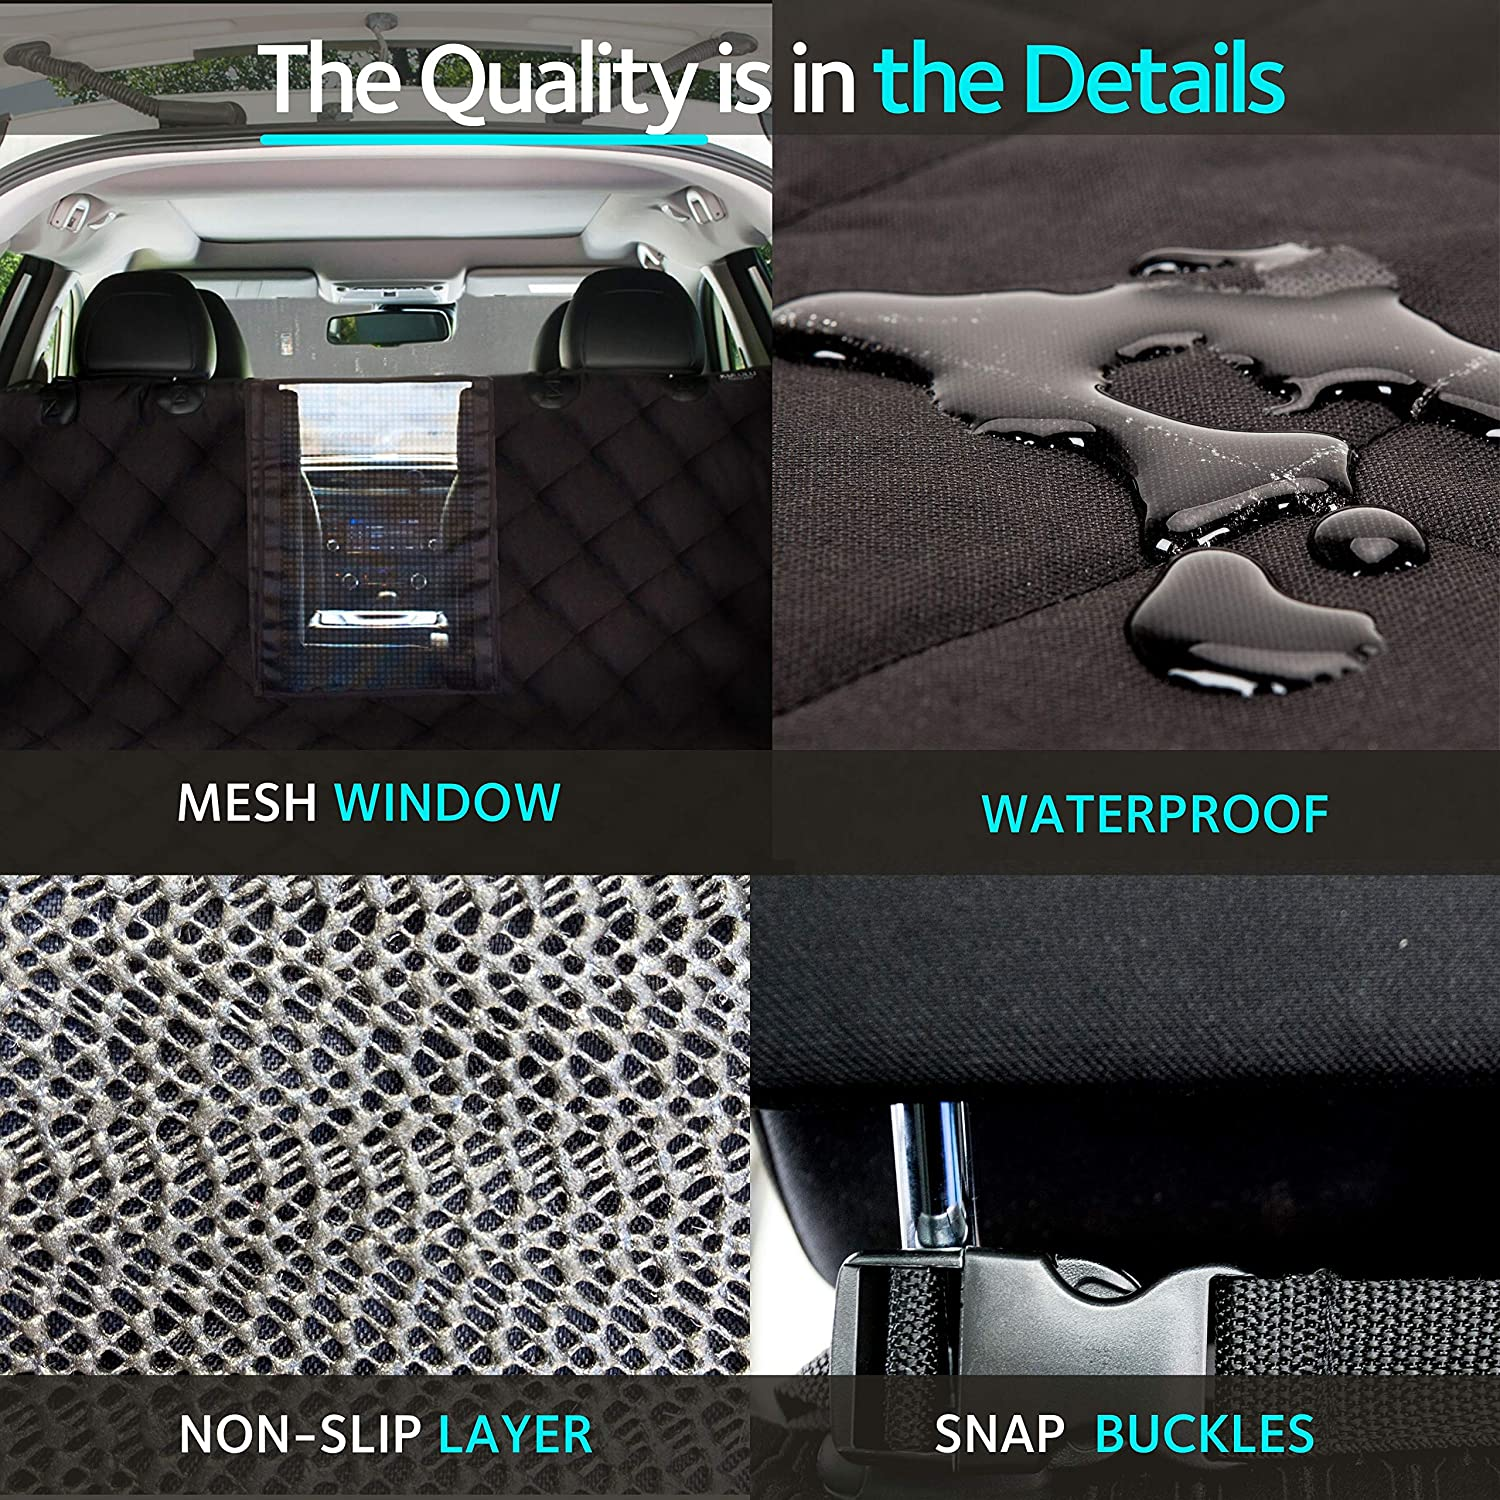 """KULULU SUV Cargo Liner for Dogs, Heavy Duty Waterproof Non Slip Durable Liner, Mesh Window for Stress Free Travel, Pet Cargo Cover with Bumper Flap Protector, Universal Fit 55"""" W X 93"""" L : Pet Supplies"""